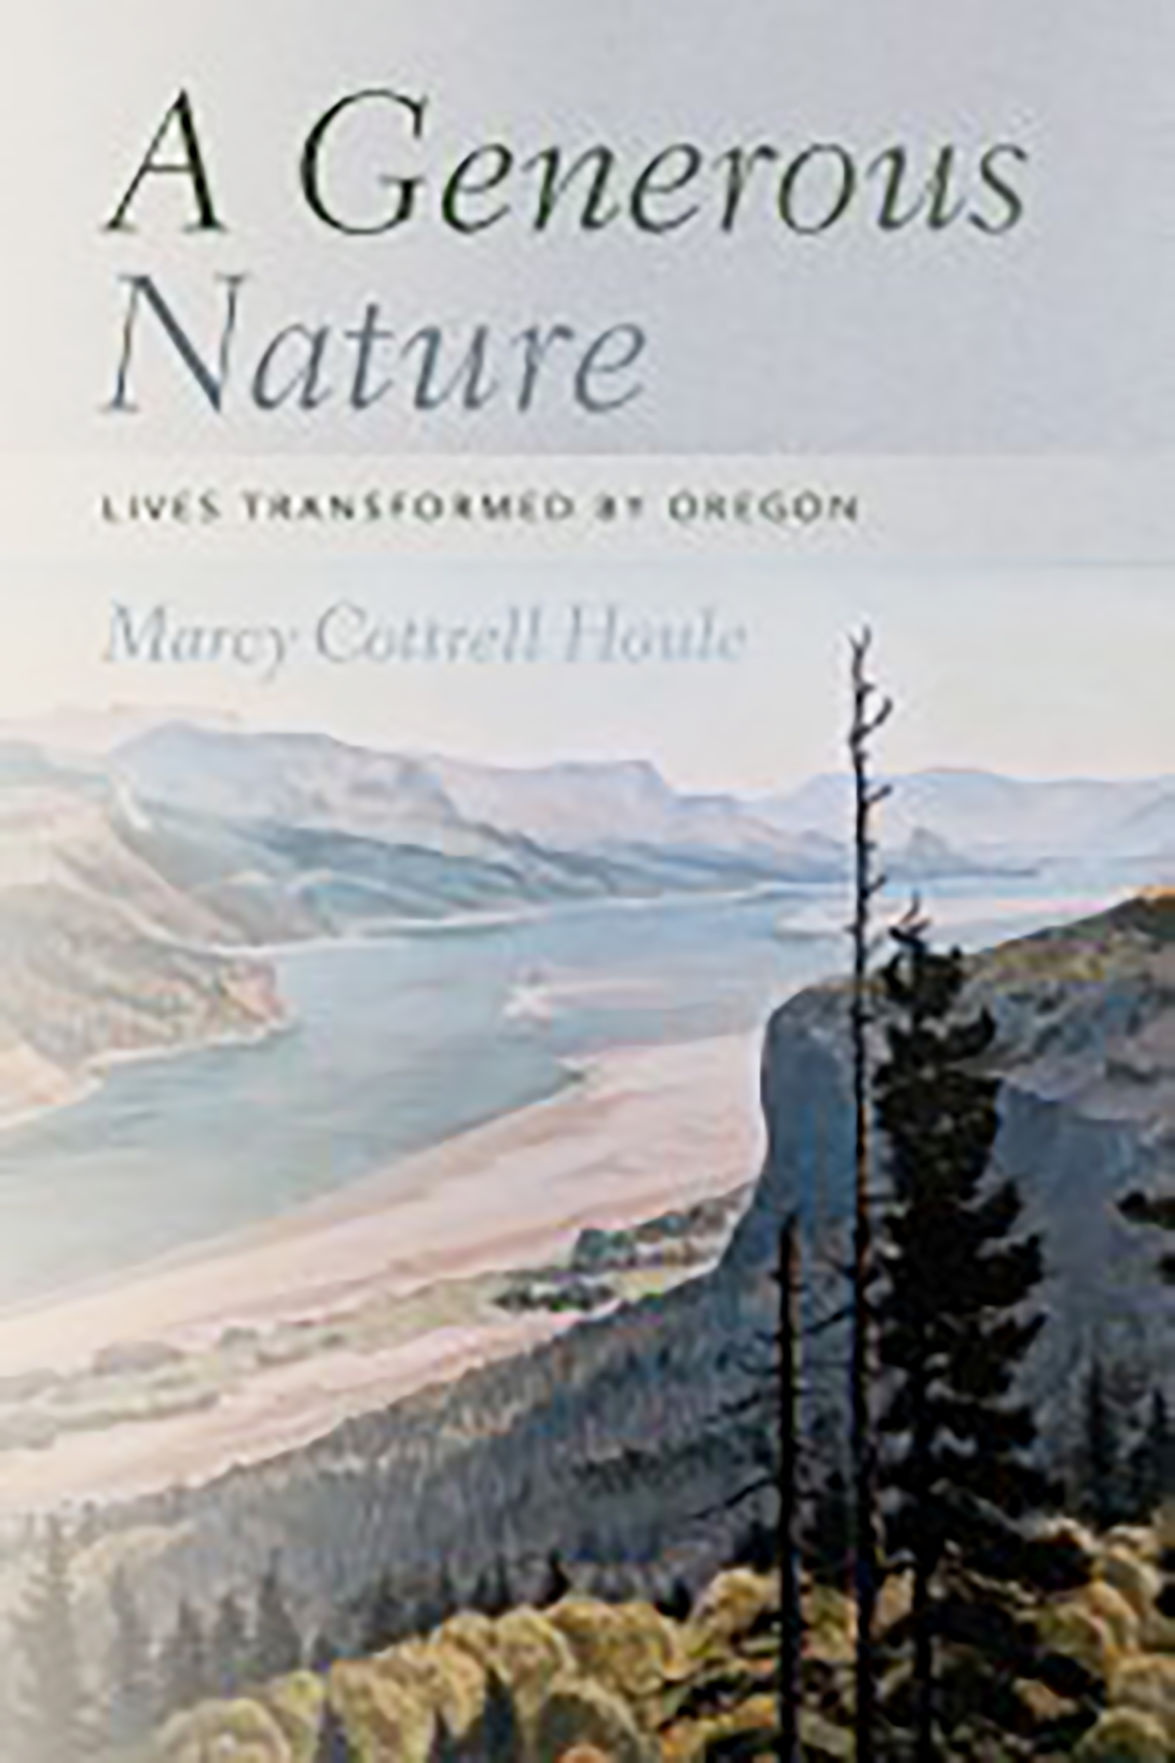 A Generous Nature: Lives Transformed by Oregon